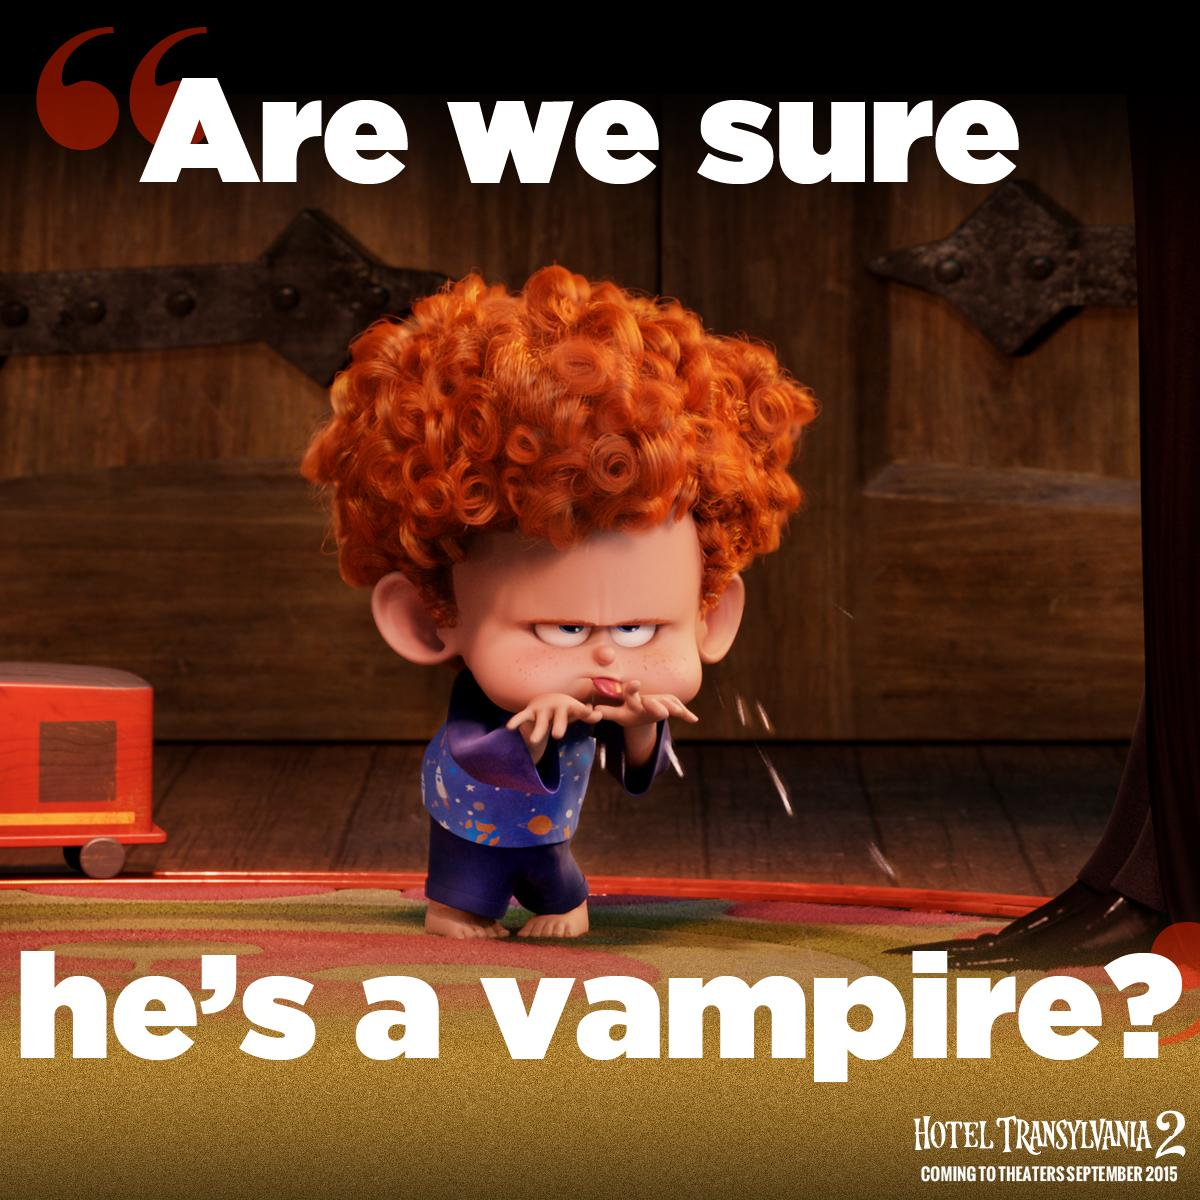 Hotel Transylvania On Twitter Who Do You Think Baby Dennis Will Take After